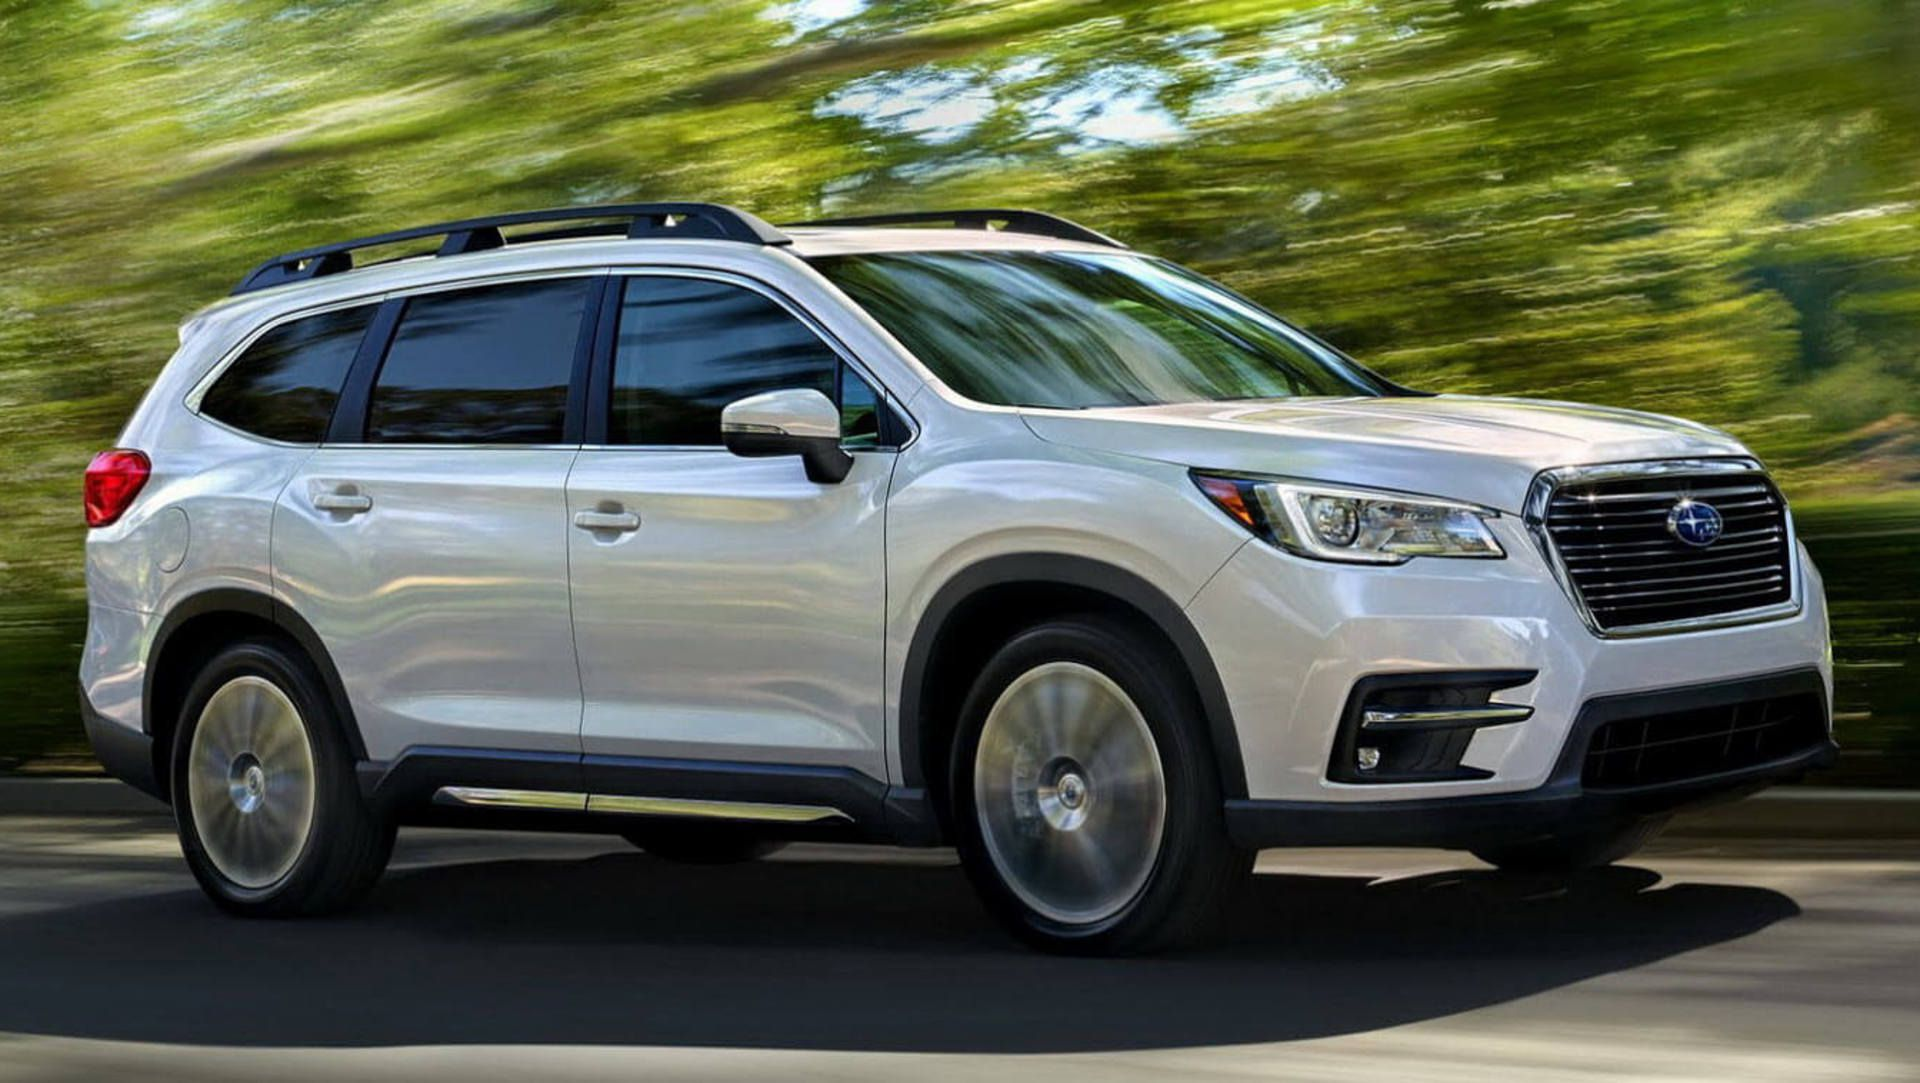 2019 Subaru Ascent 7 Seater Suv Priced From 31 995